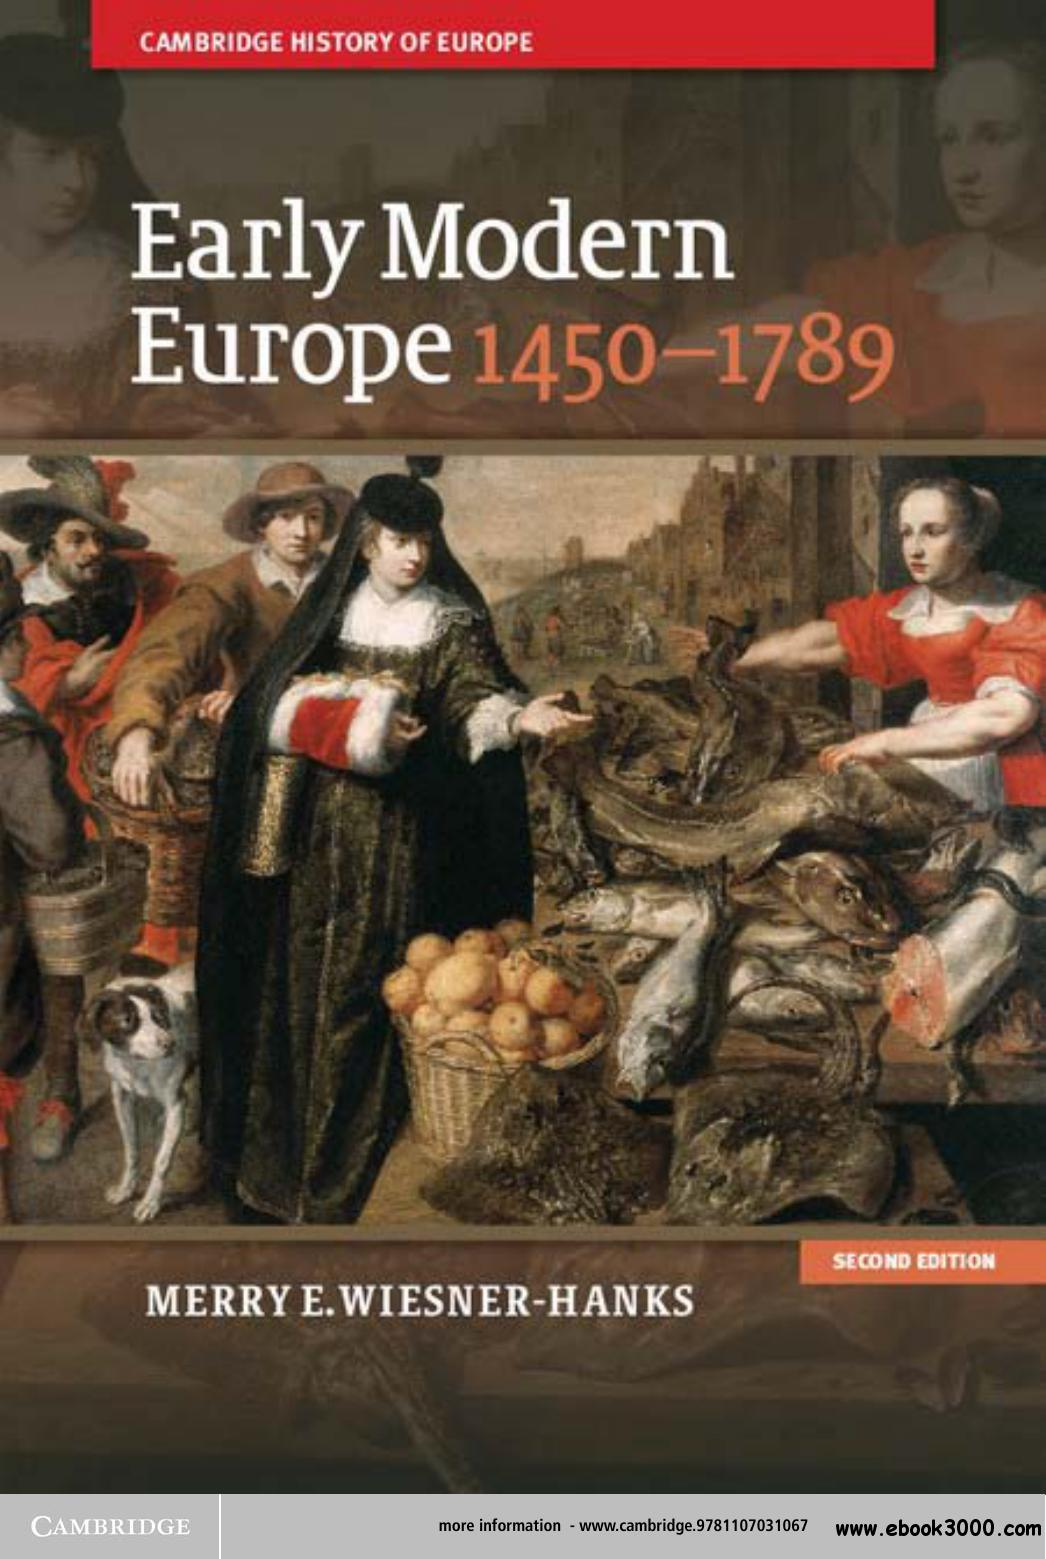 Early Modern Europe, 1450-1789 free download